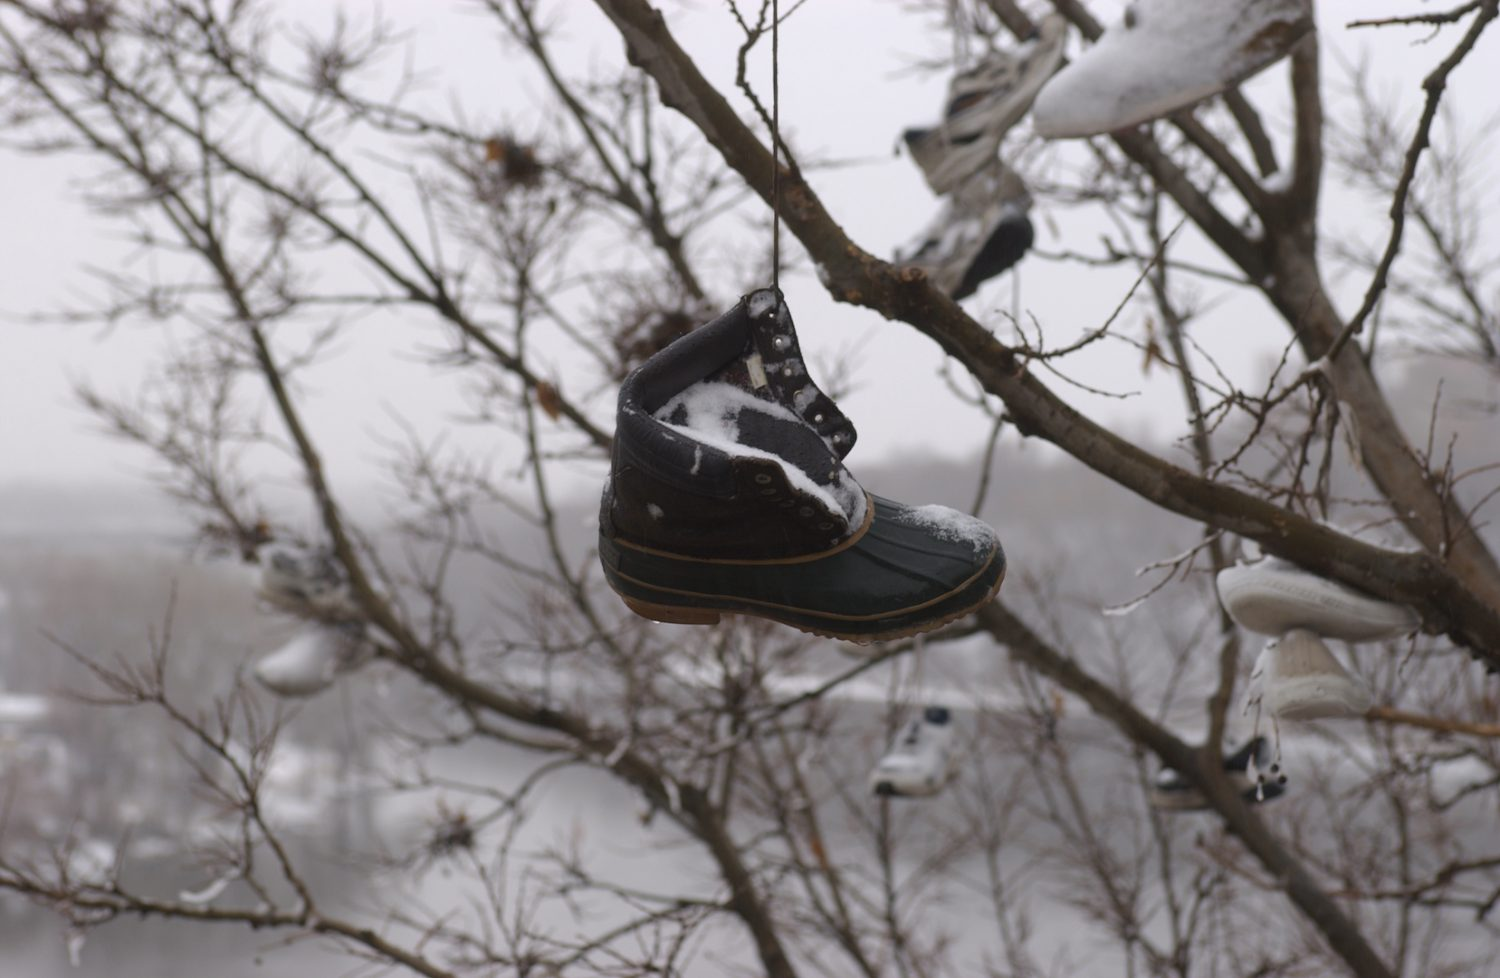 A single winter boot covered in snow hanging from an unseen branch. The Mississippi River is in the background.